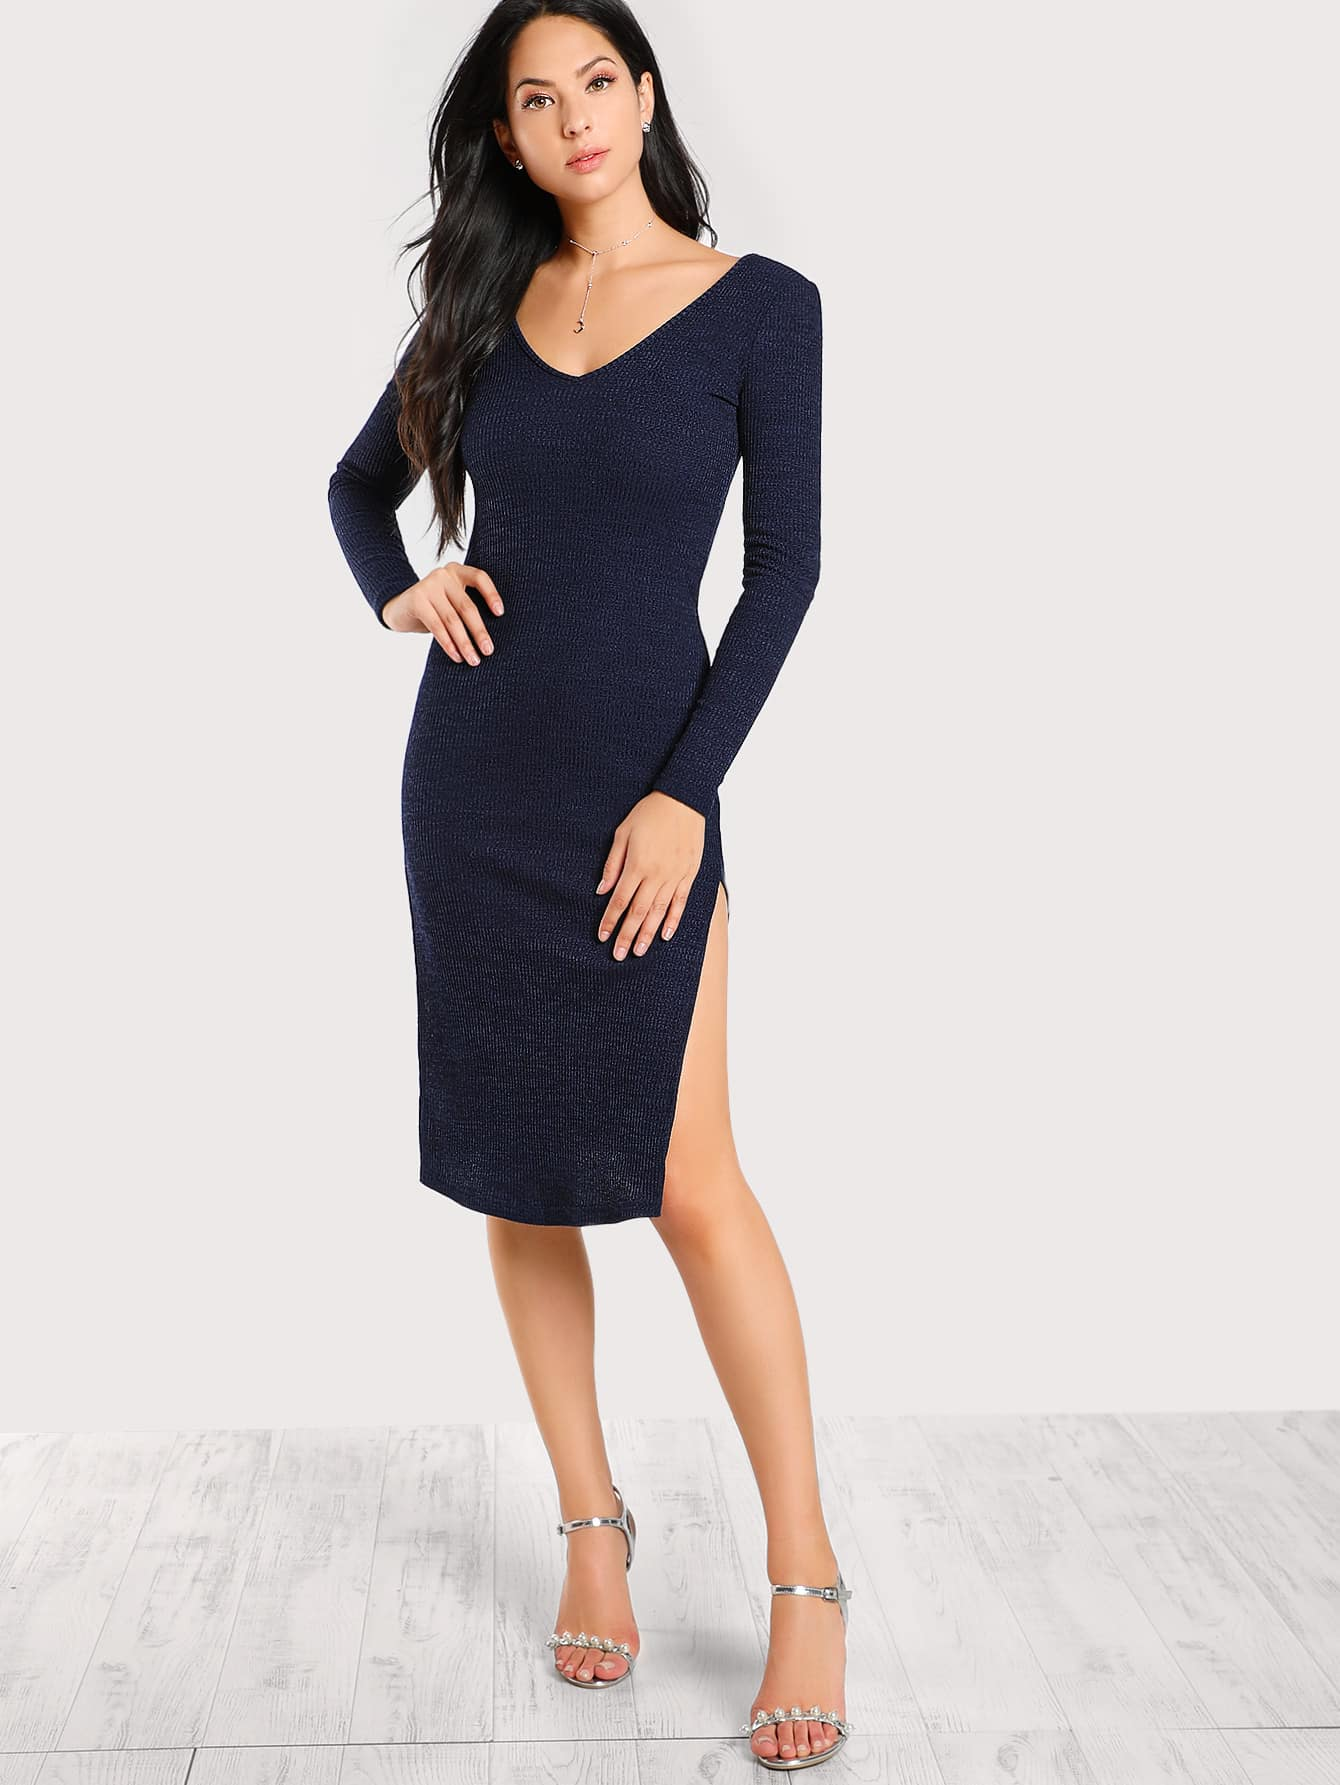 Double V Neck High Slit Rib Knit Dress dressmmc170829702